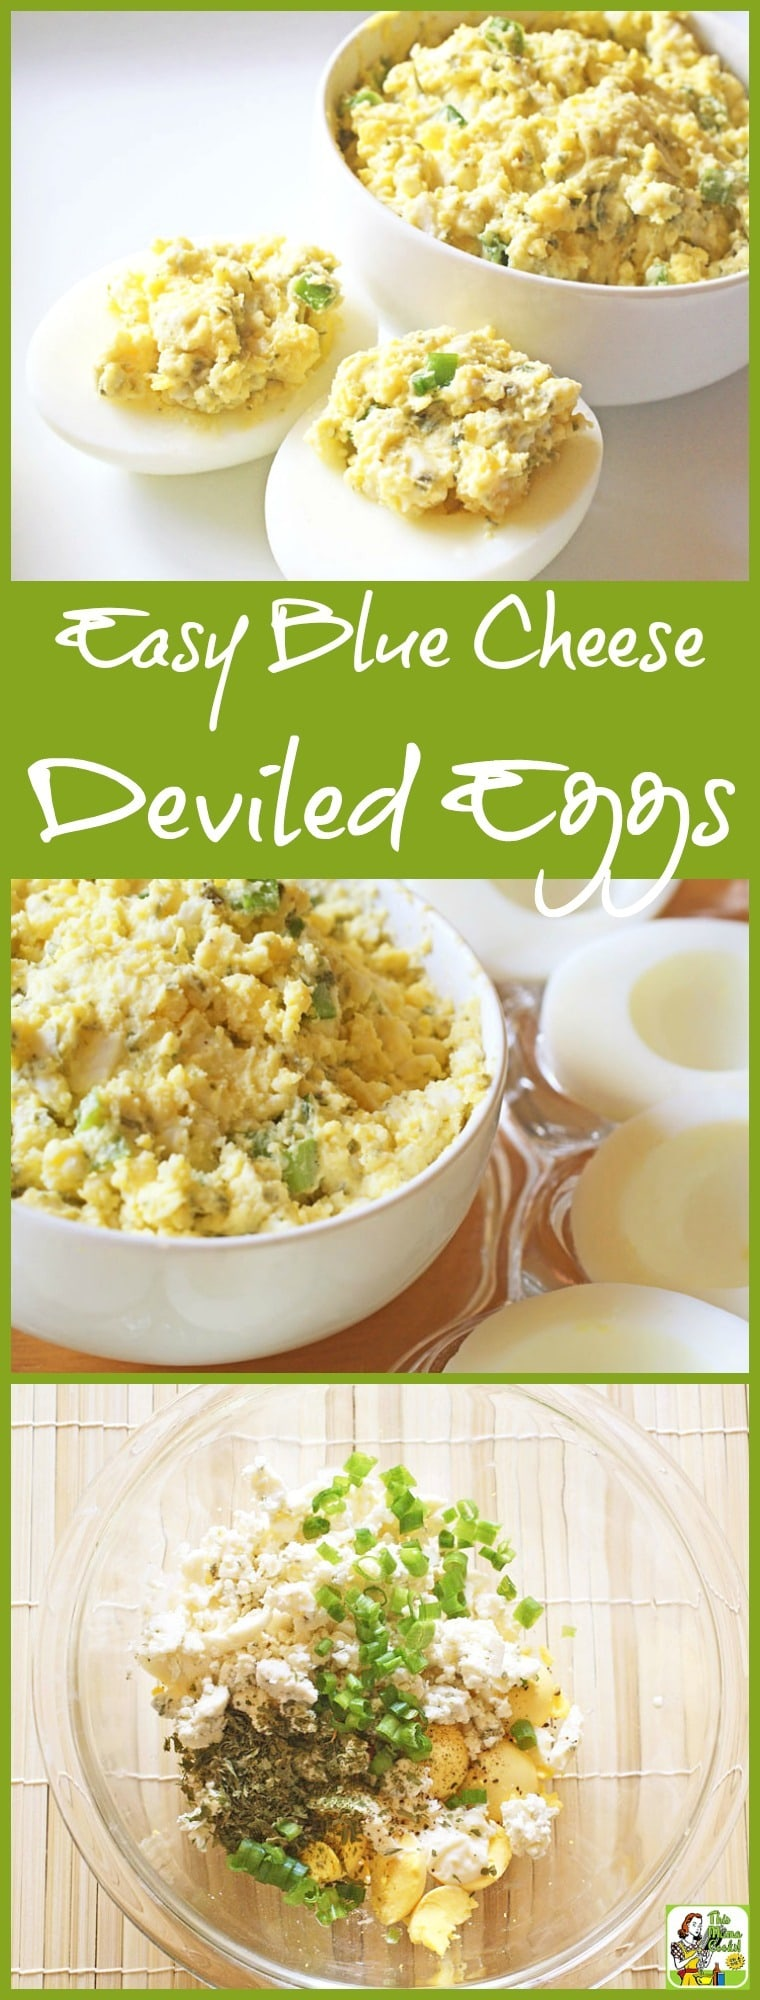 Looking for an easy to make appetizer that's also gluten free? This Easy Blue Cheese Deviled Eggs recipe is ideal for parties and potlucks.